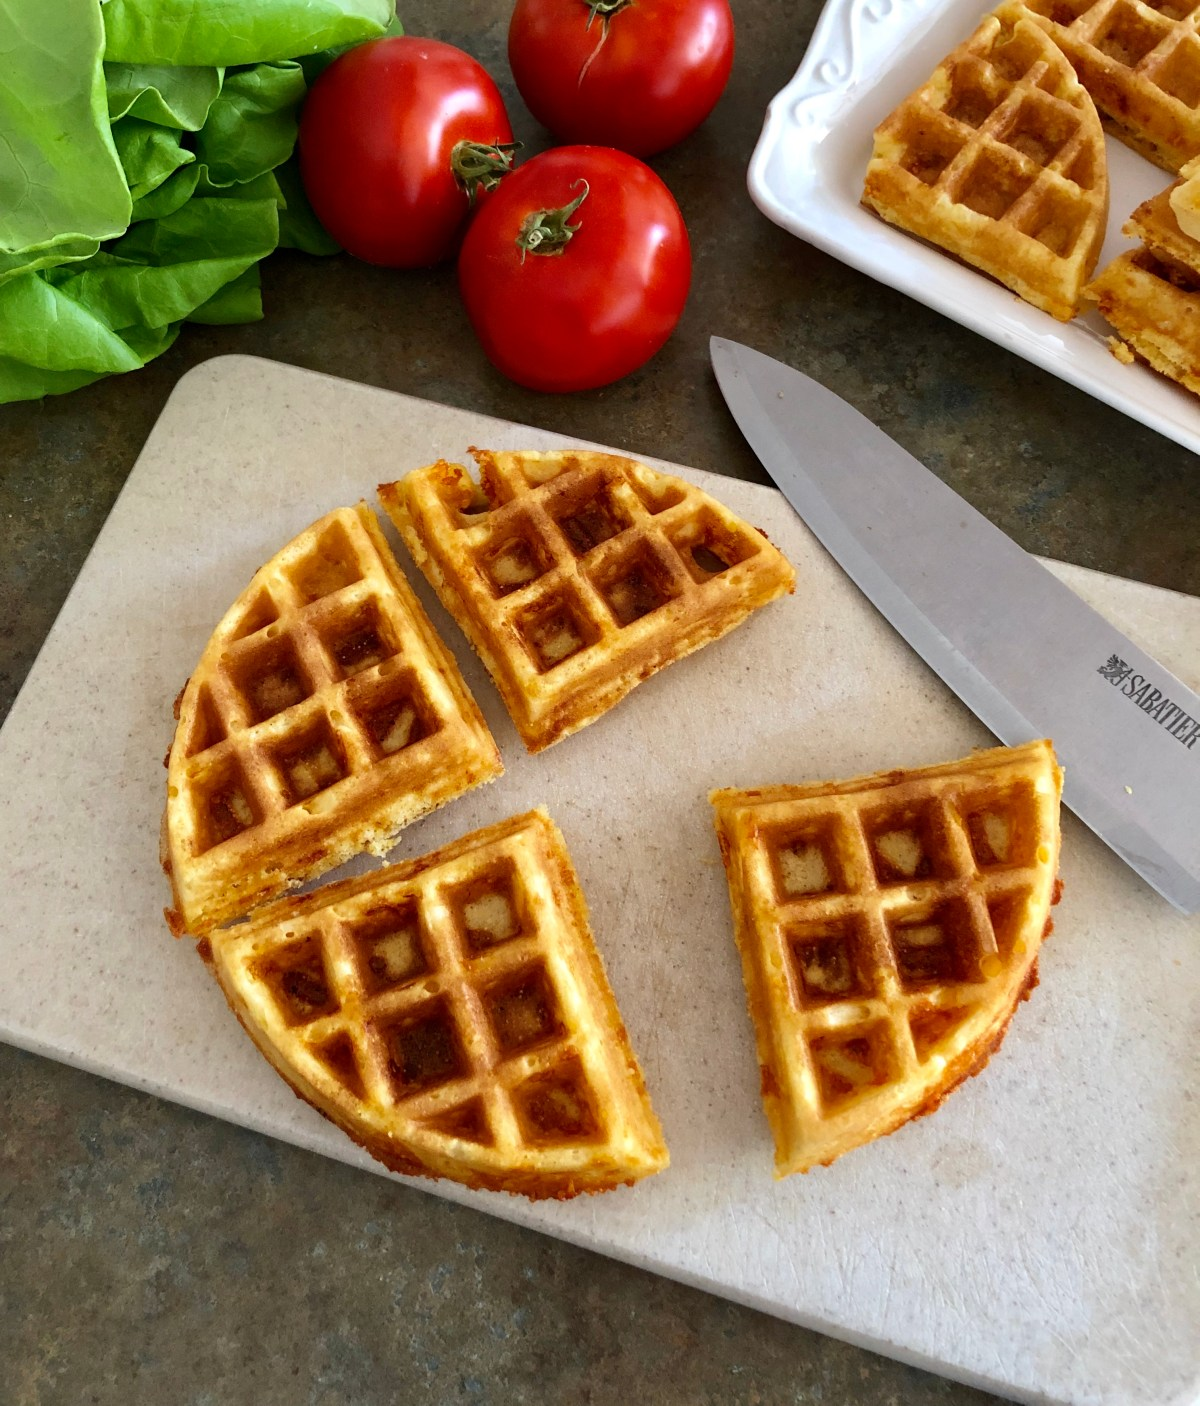 Round waffle cut into fourths on a cutting board.